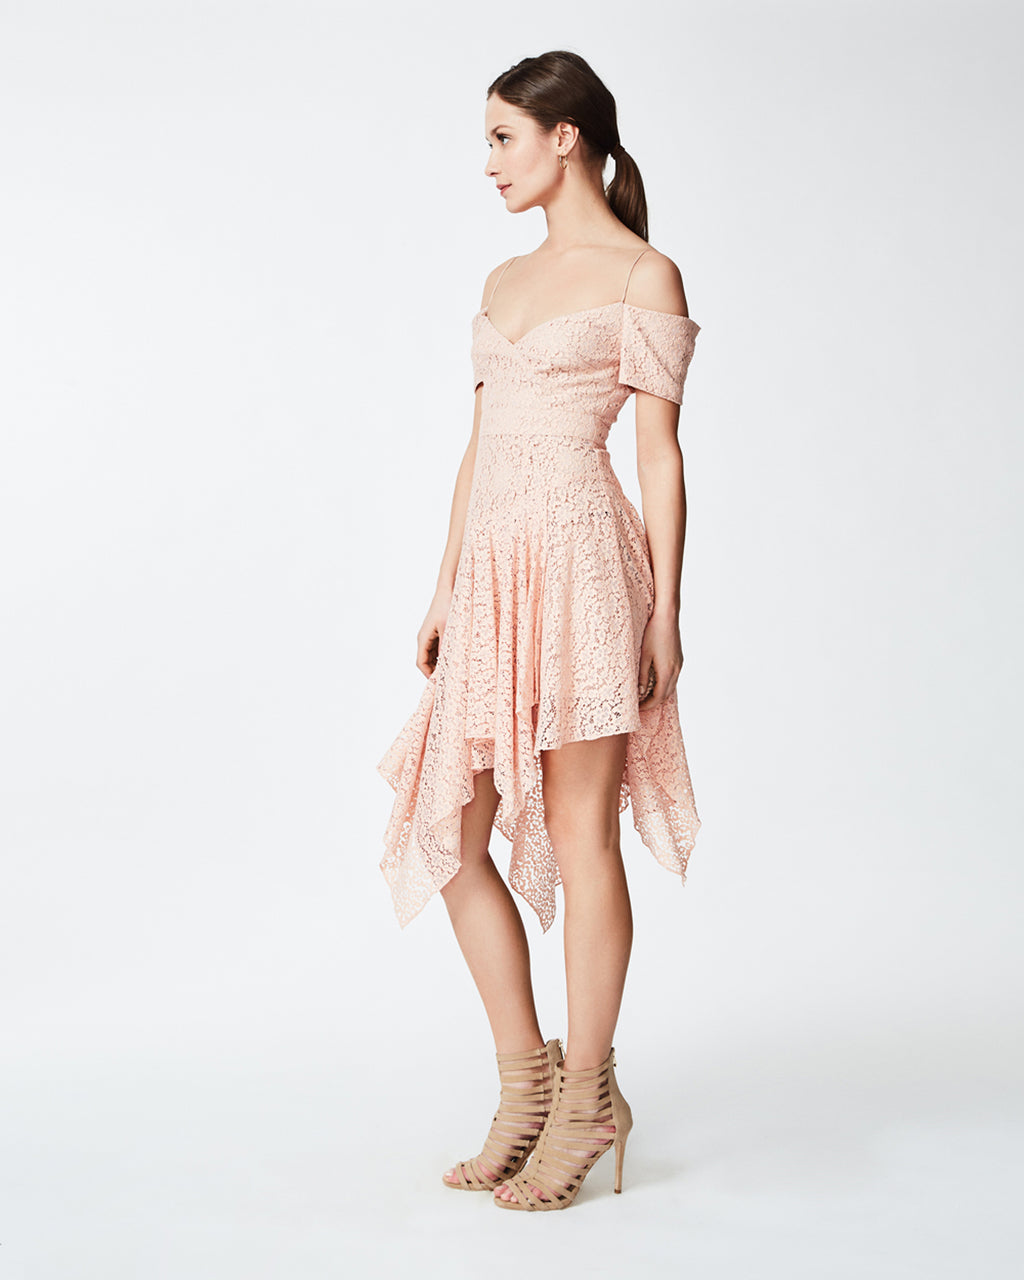 CC10167 - LACE SCARF DRESS - dresses - long - In a soft blush hue, this lace dress is crafted in a mini flora and an asymmetric hemline. The thin straps suspend the dress into a faux wrap neckline for a trendy look. Finished with a concealed zipper for closure and fully lined. FINAL SALE